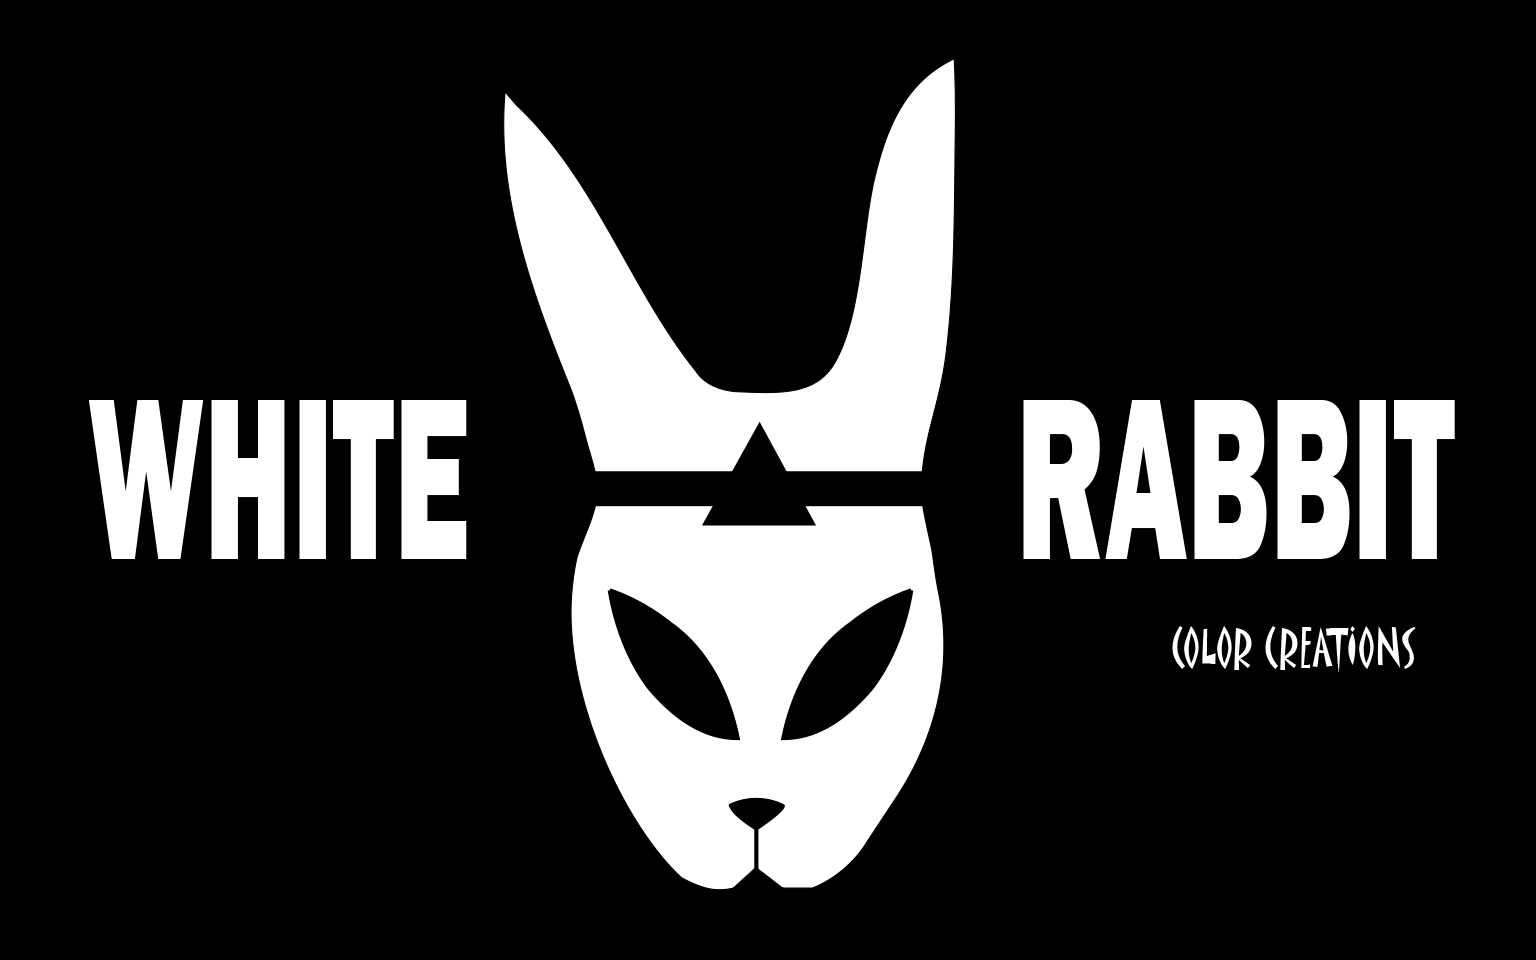 White Rabbit Color Creations Logo